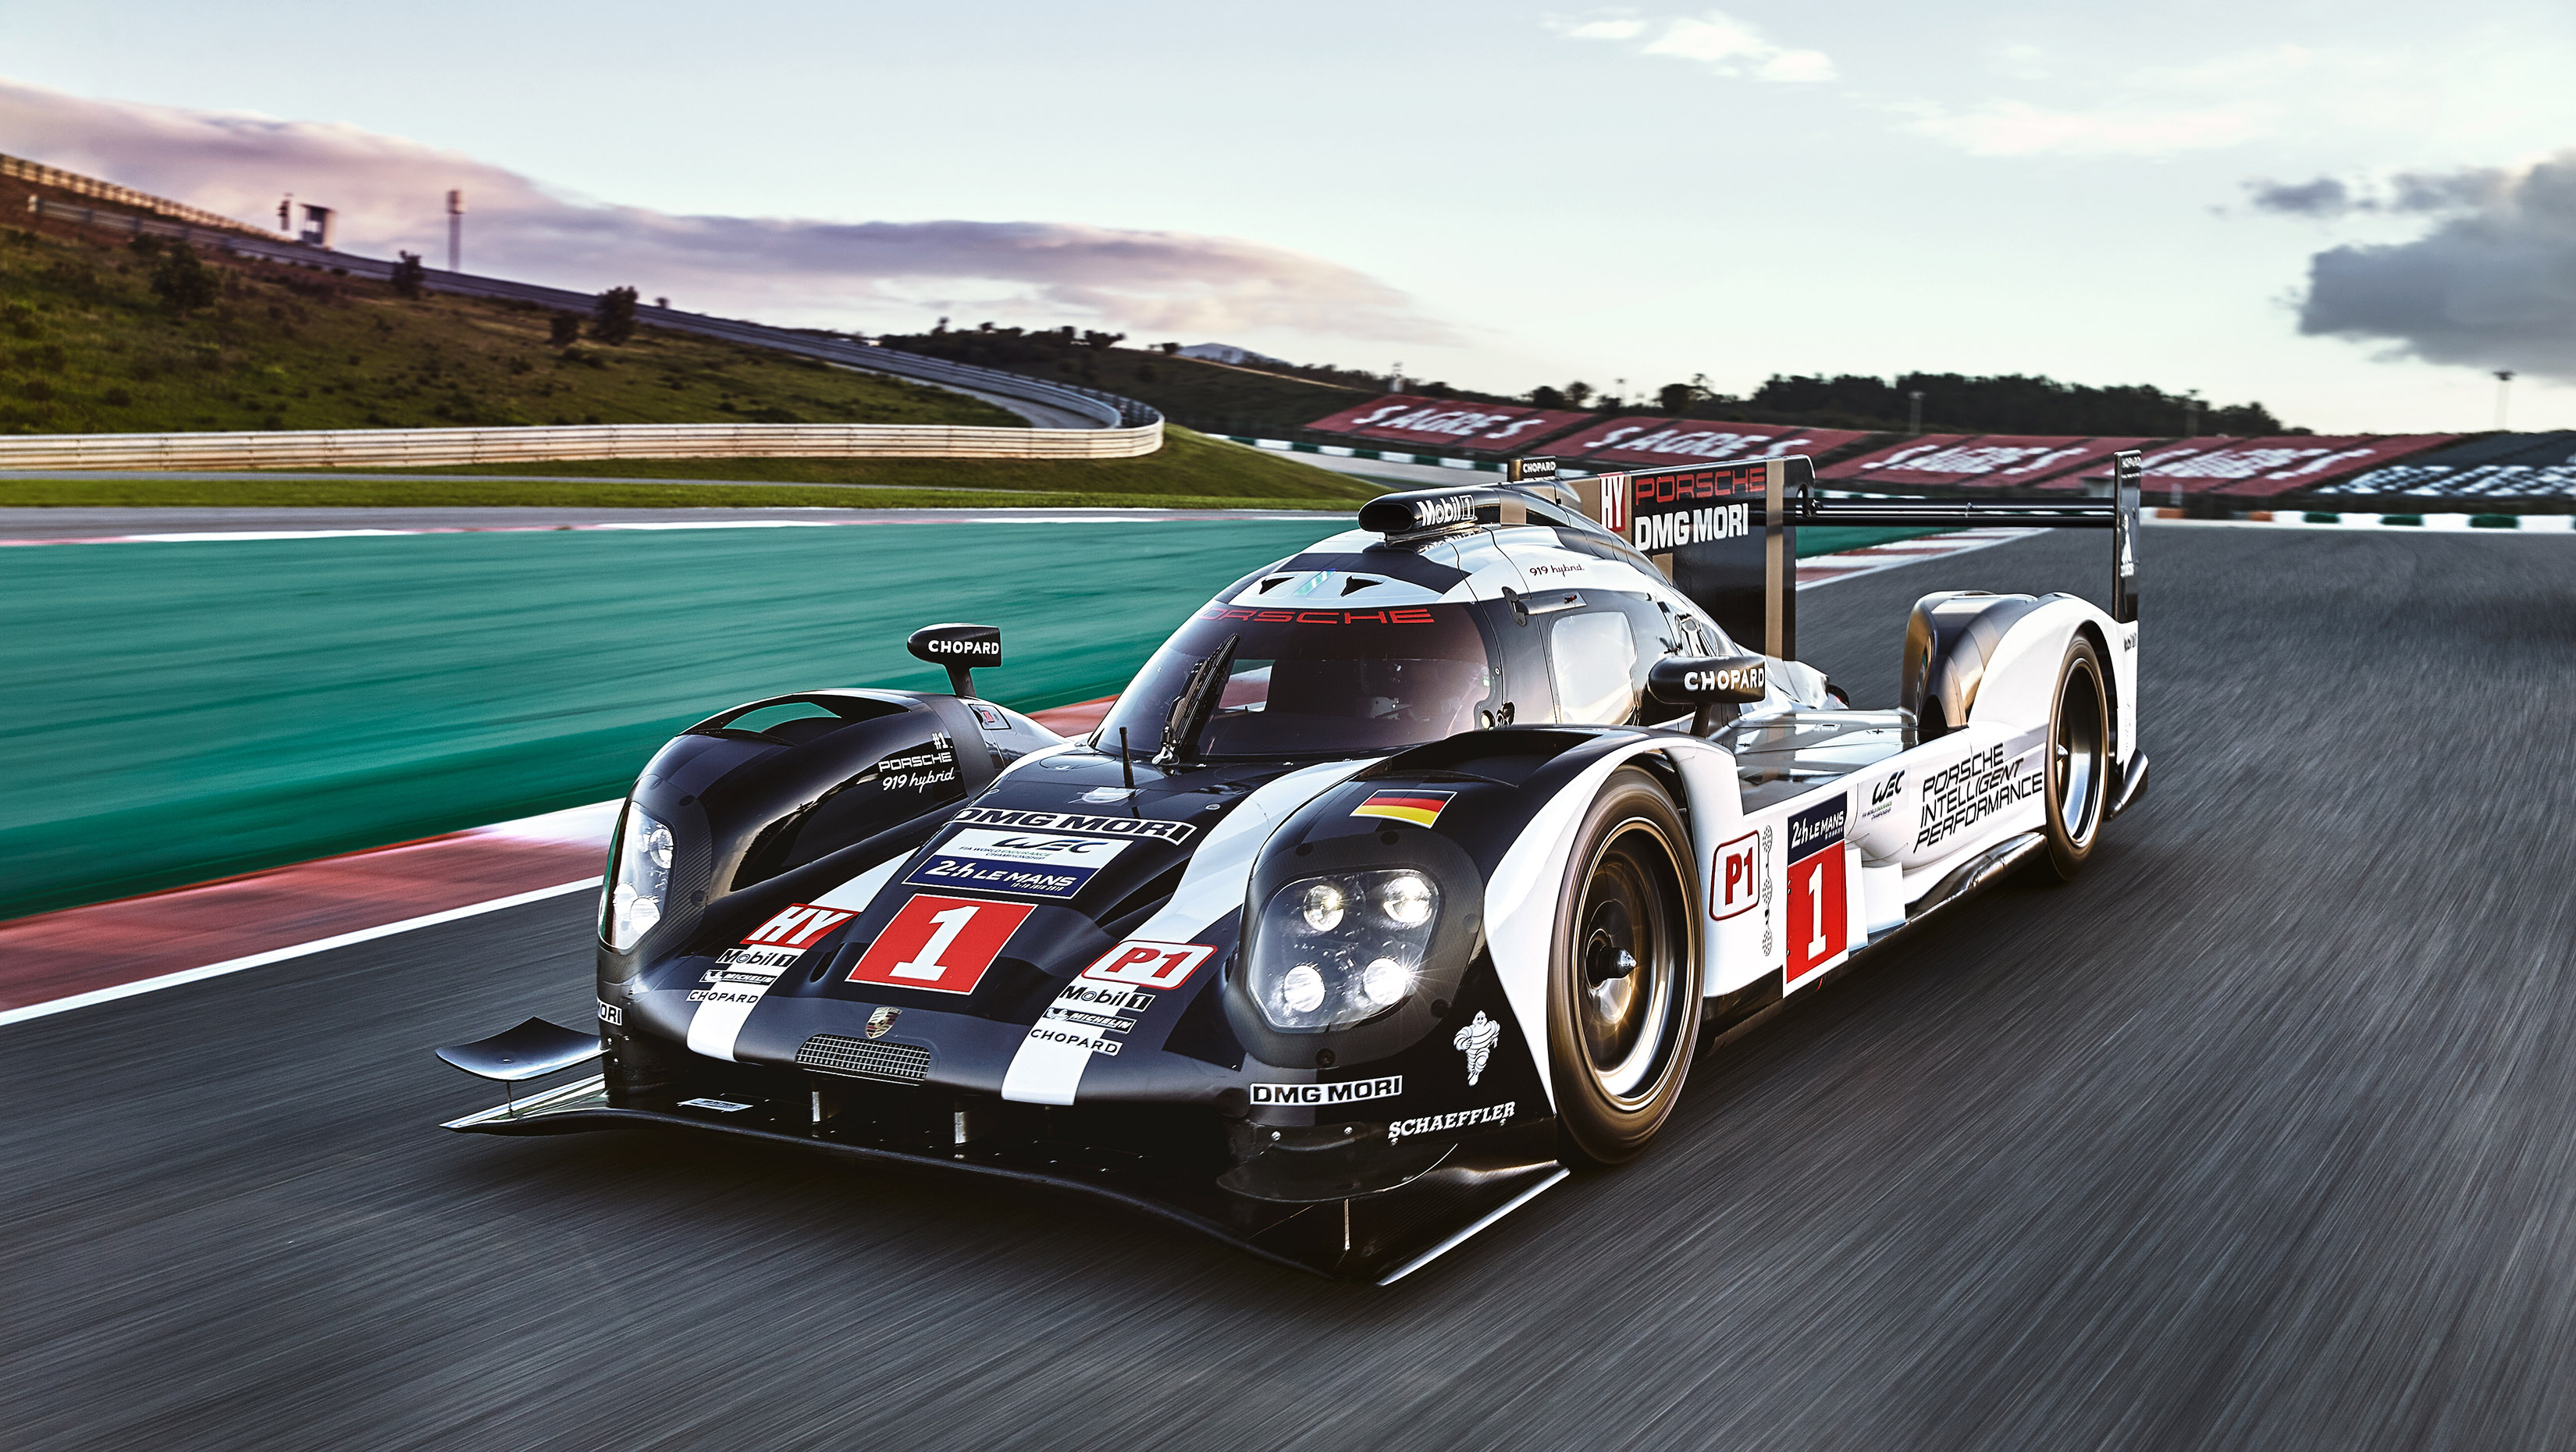 12 Photos 2016 Porsche 919 Hybrid Lmp1 Race Car